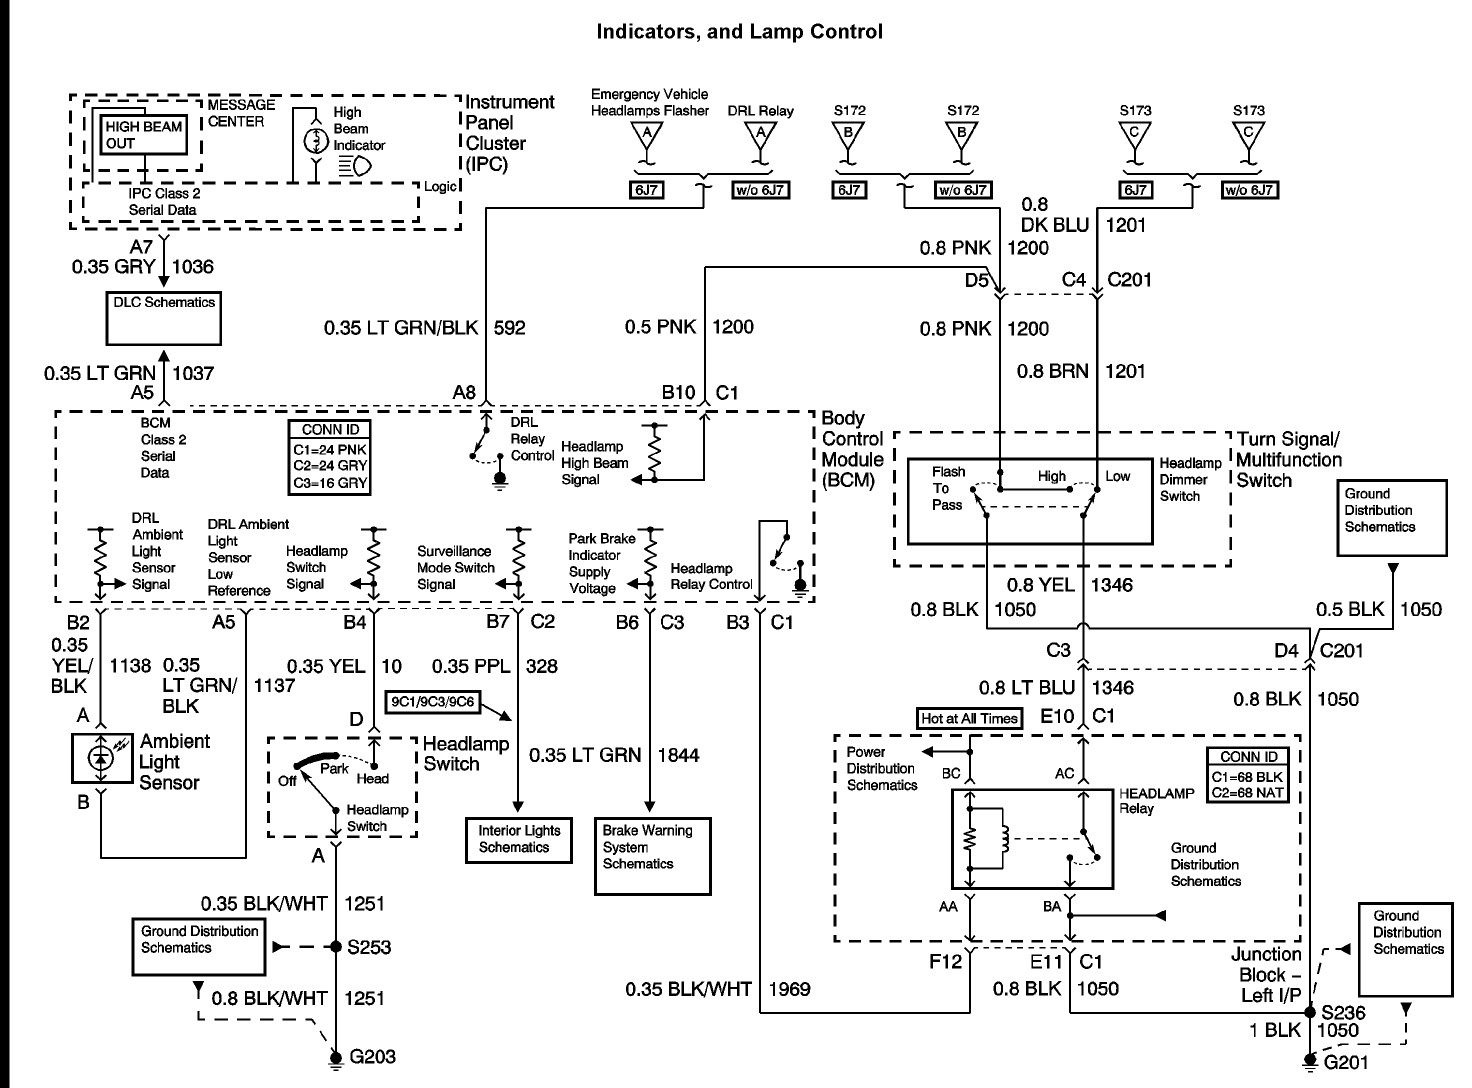 2003 chevy impala wiring diagram Download-2003 Chevy Impala Wiring Diagram 2003 Chevrolet Impala Fuel System Wiring Diagram Wire Center U2022 18-i